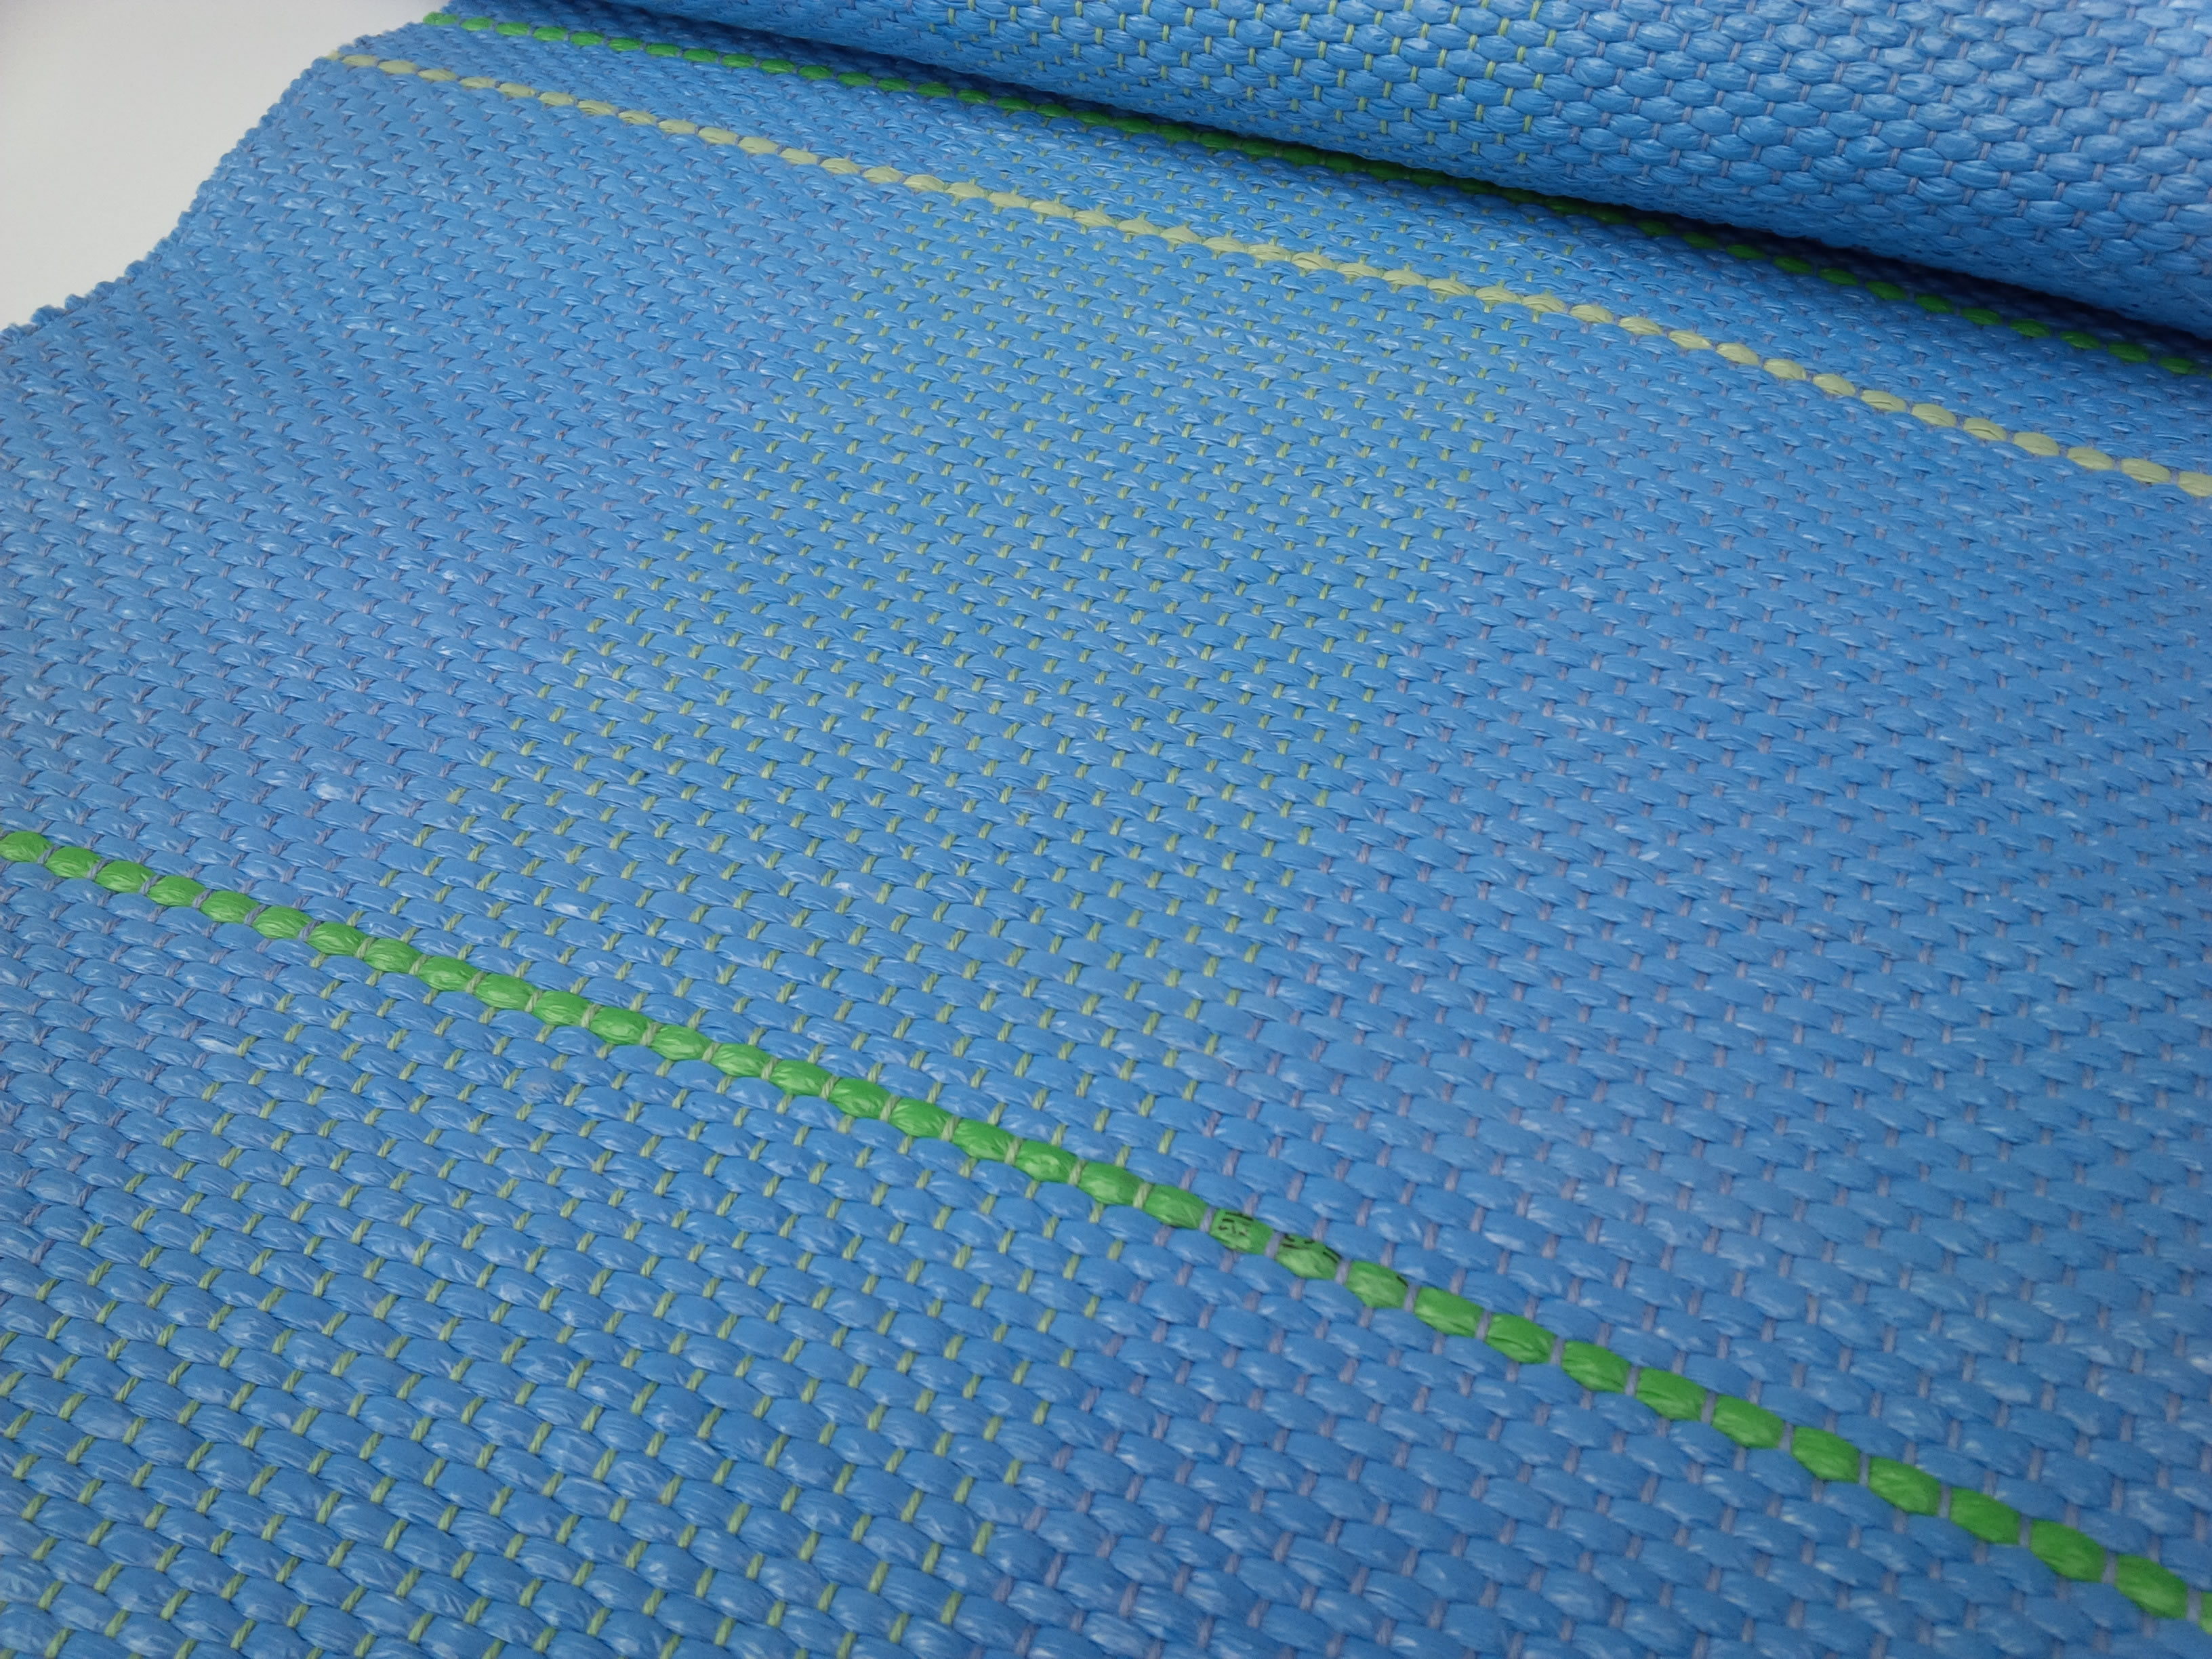 Blue runner with green and gray stripe